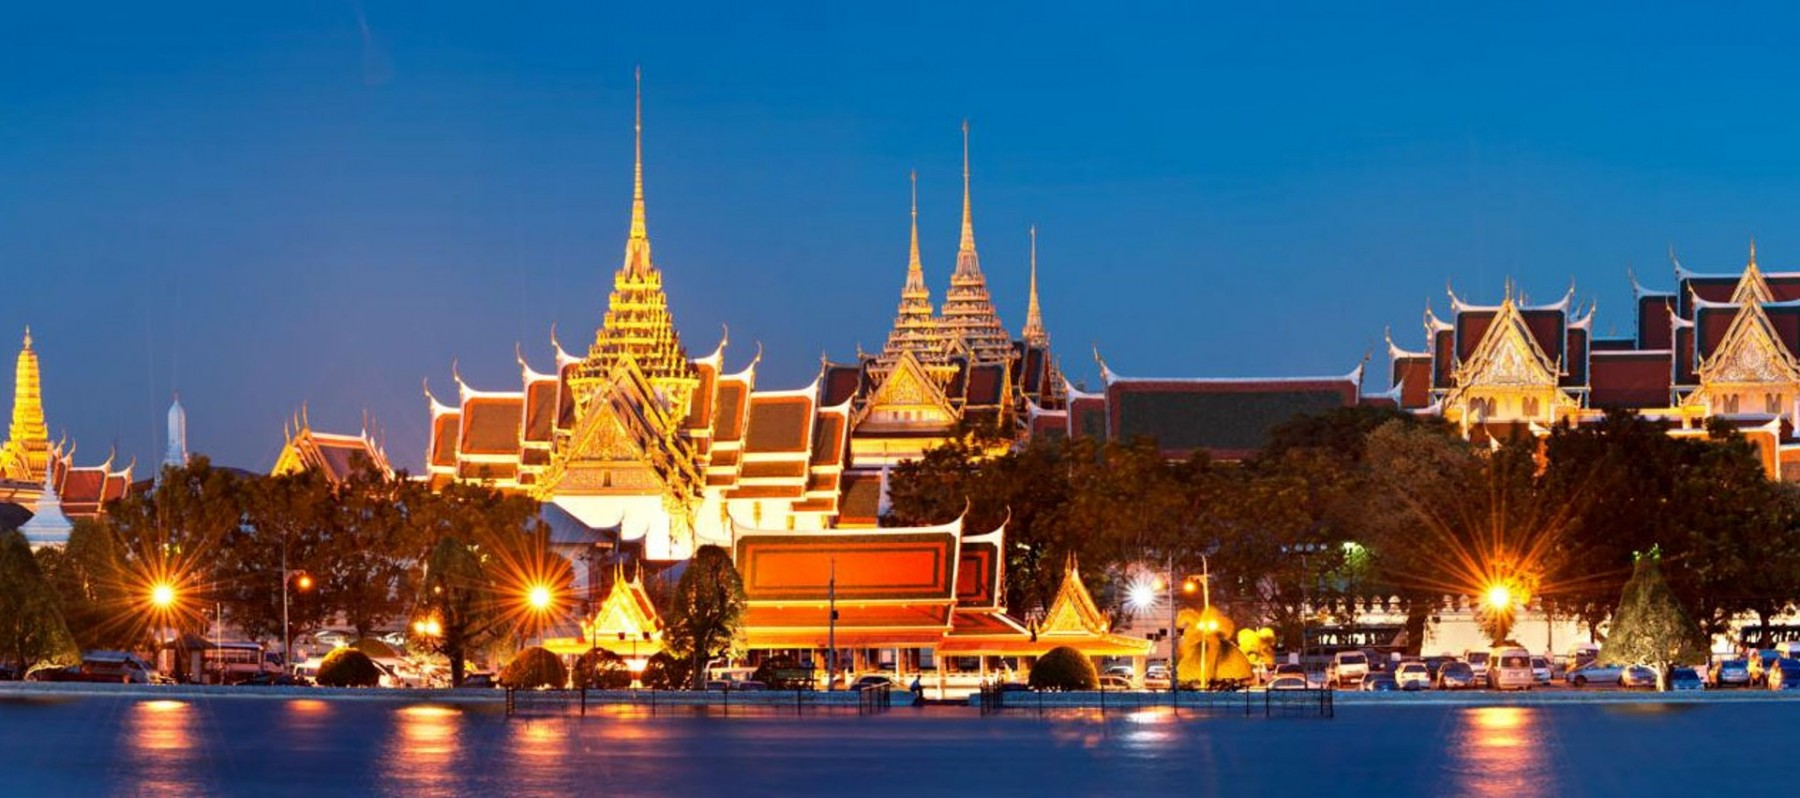 Night at Bangkok Grand Palace